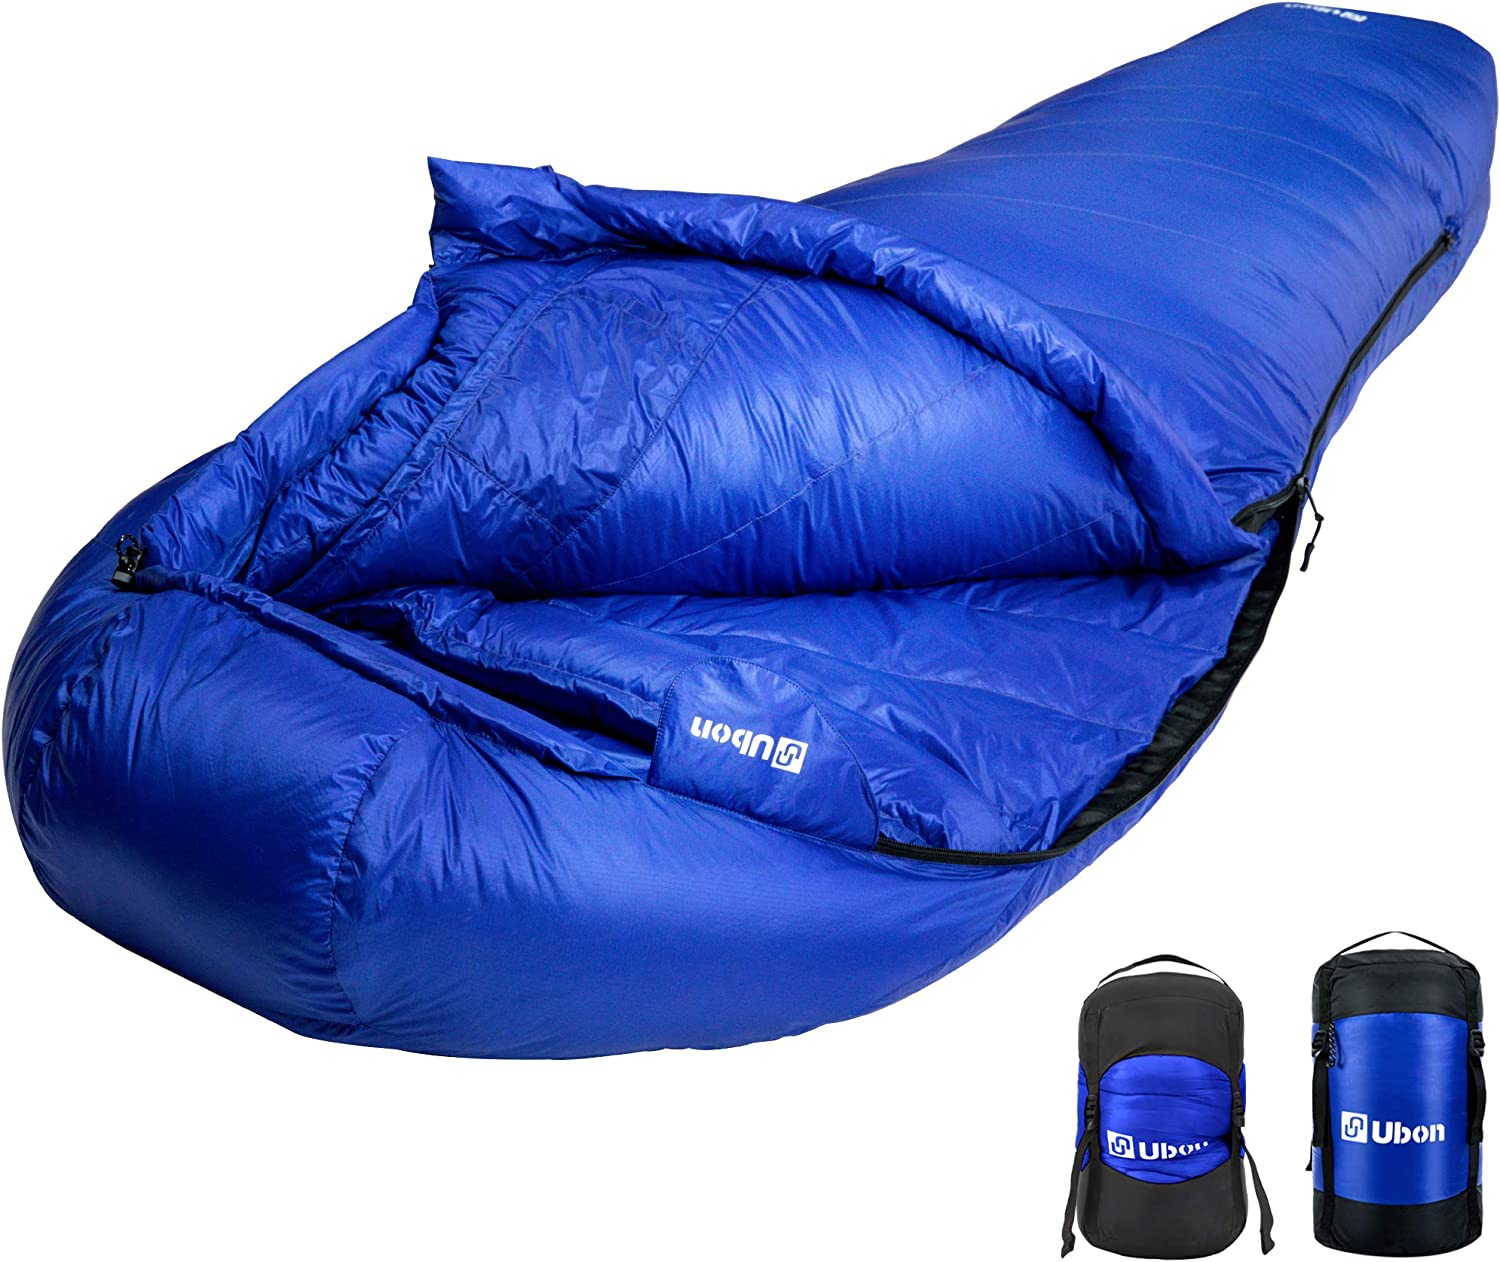 Ultralight Camping Sleeping Bag Ubon Extreme 10 Degree F 650 Fill Power Down Sleeping Bag Waterproof Mummy Sleeping Bag for Adults